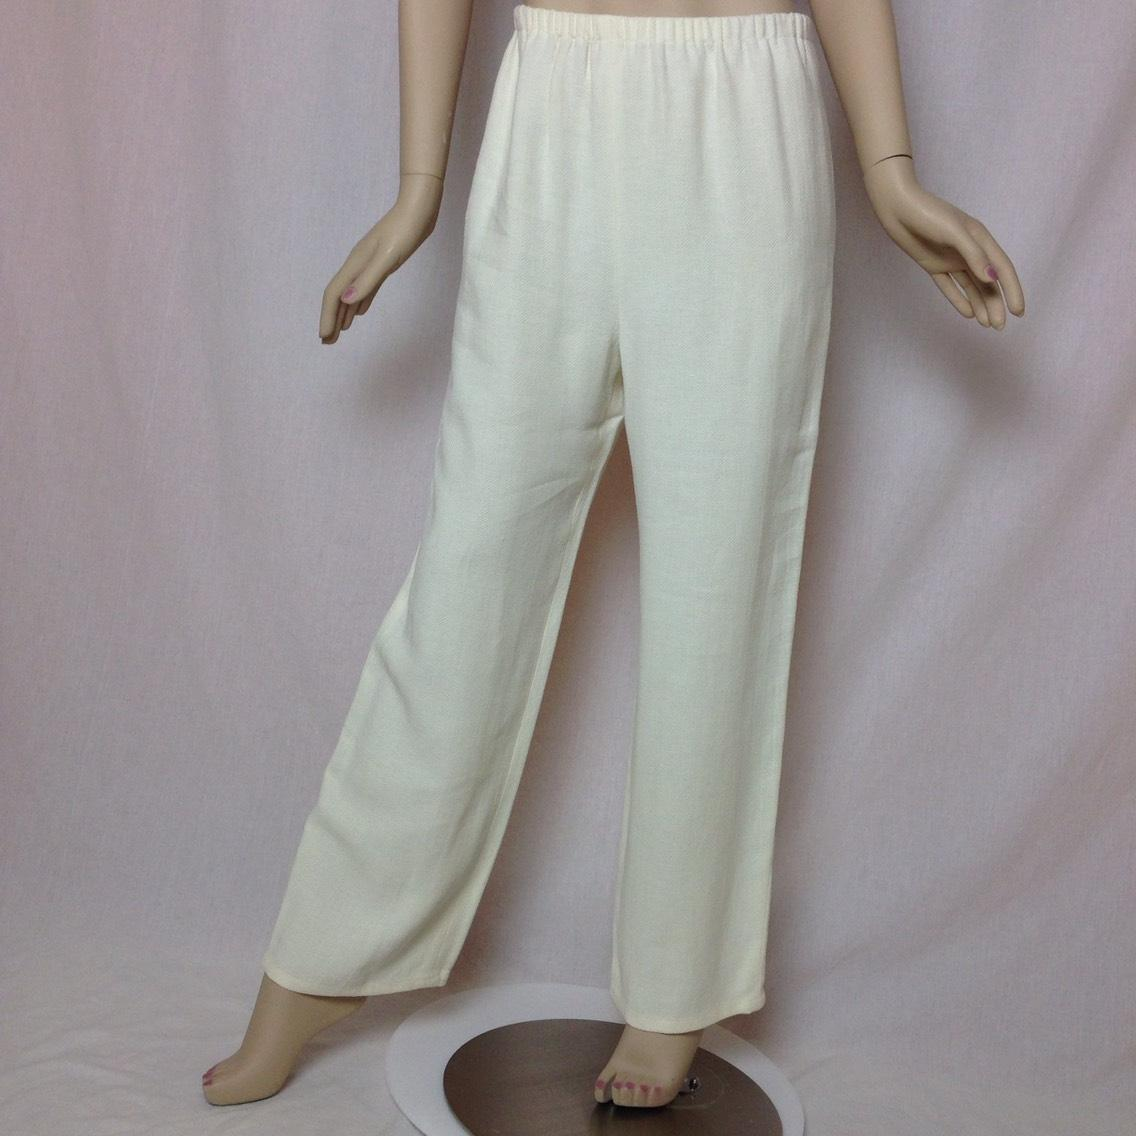 100% Linen Pants #2998690 - Pants Suits - Tradesy